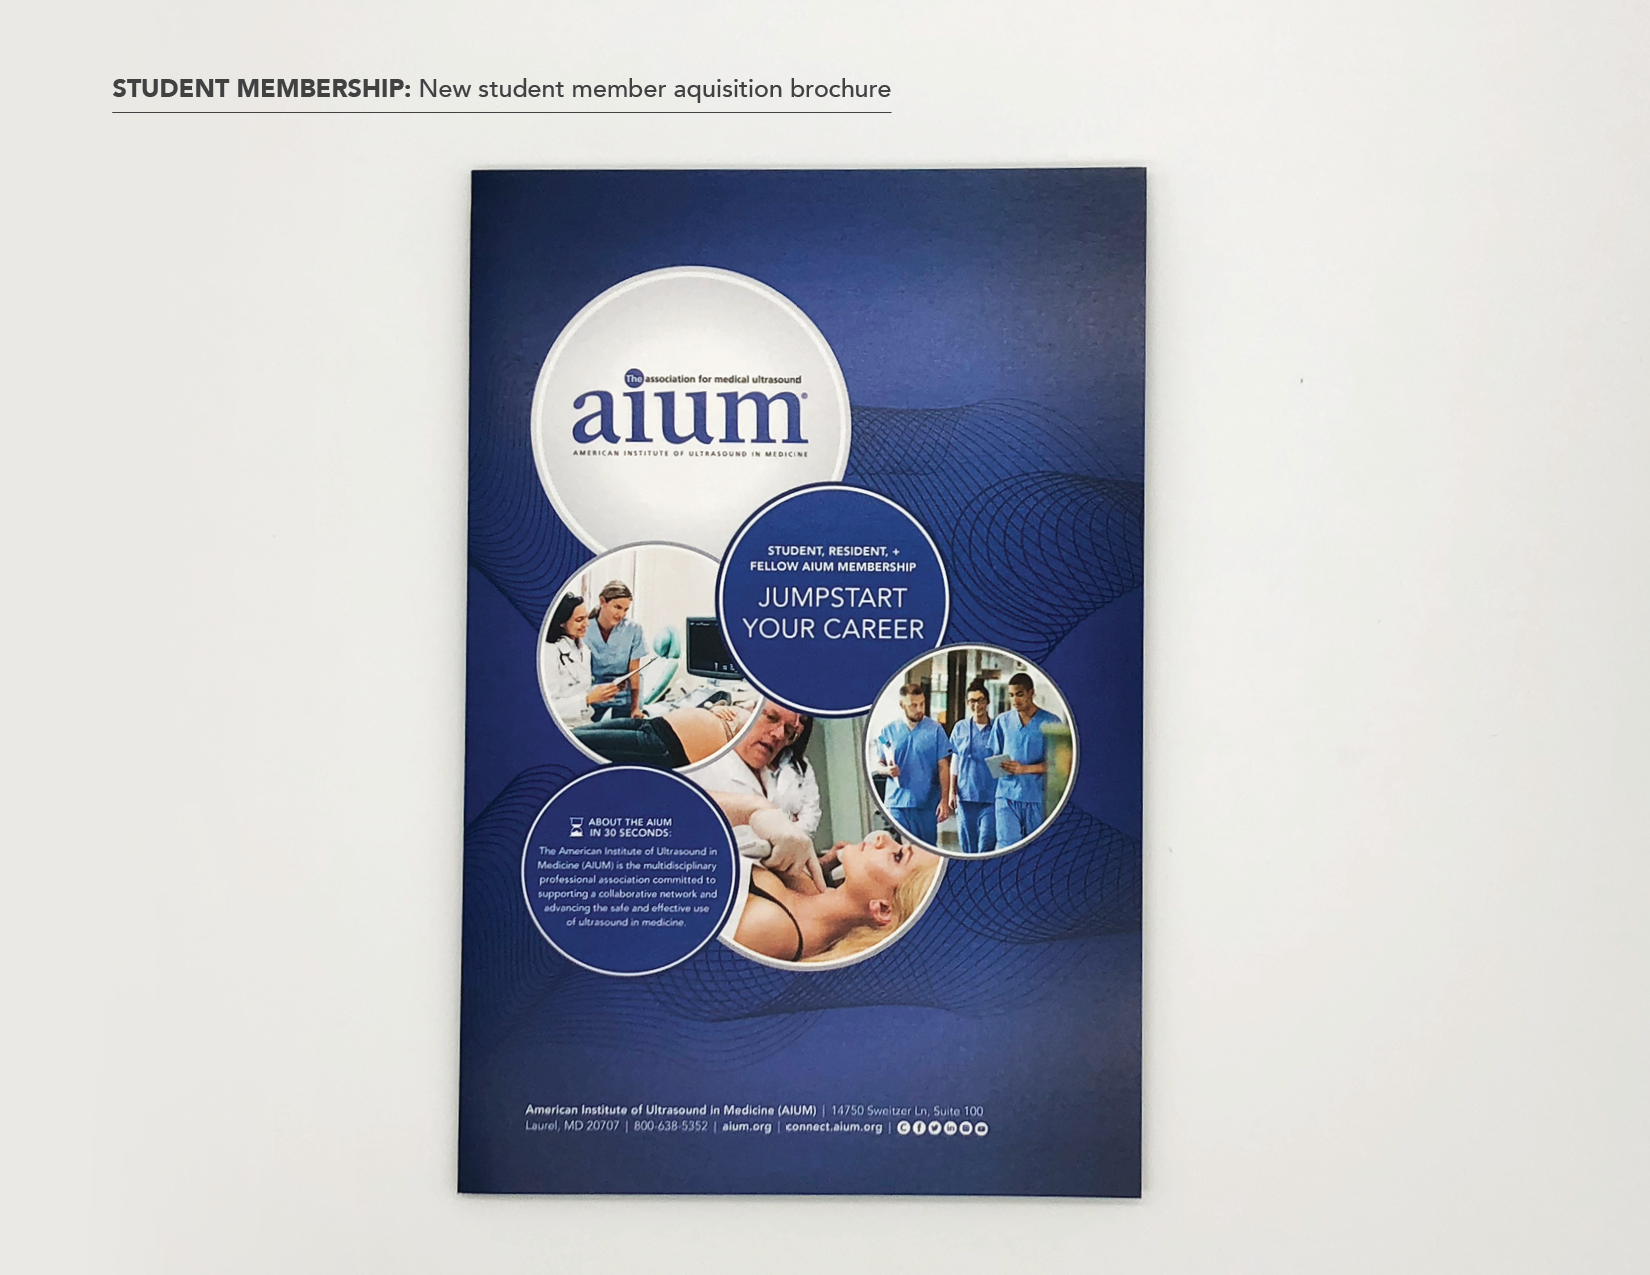 Student membership acquisition brochure